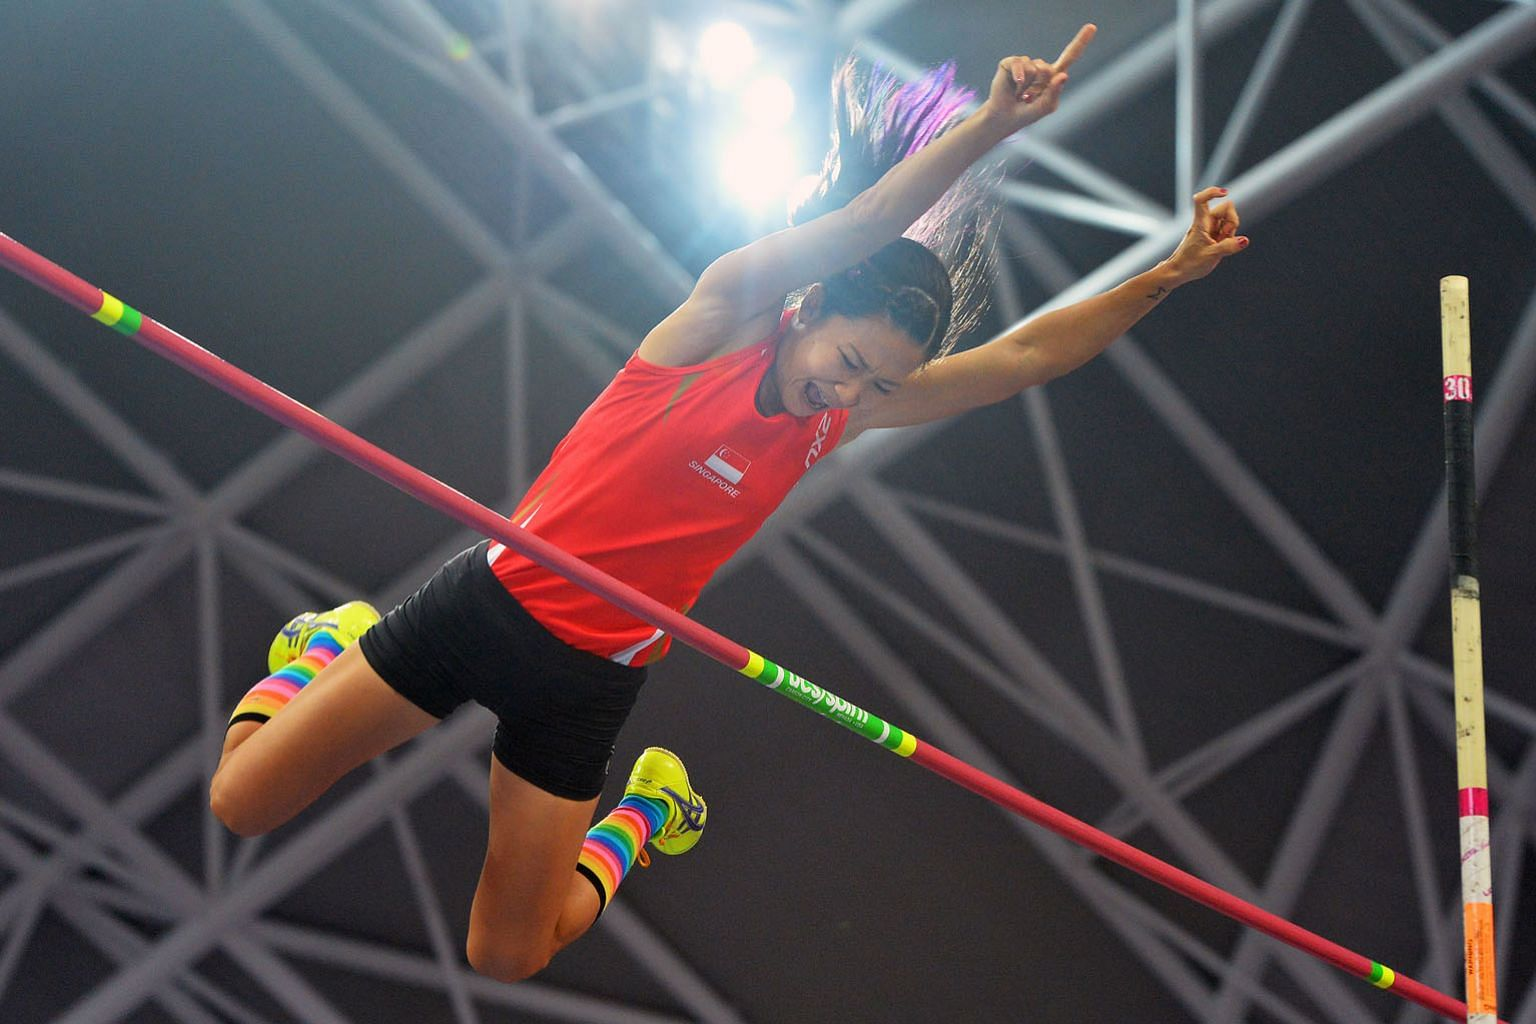 Rachel Yang clearing 3.90m to win the pole vault silver at the 2015 SEA Games in Singapore. She holds the national record of 3.91m and also won a bronze at the 2017 SEA Games in Kuala Lumpur. ST FILE PHOTO